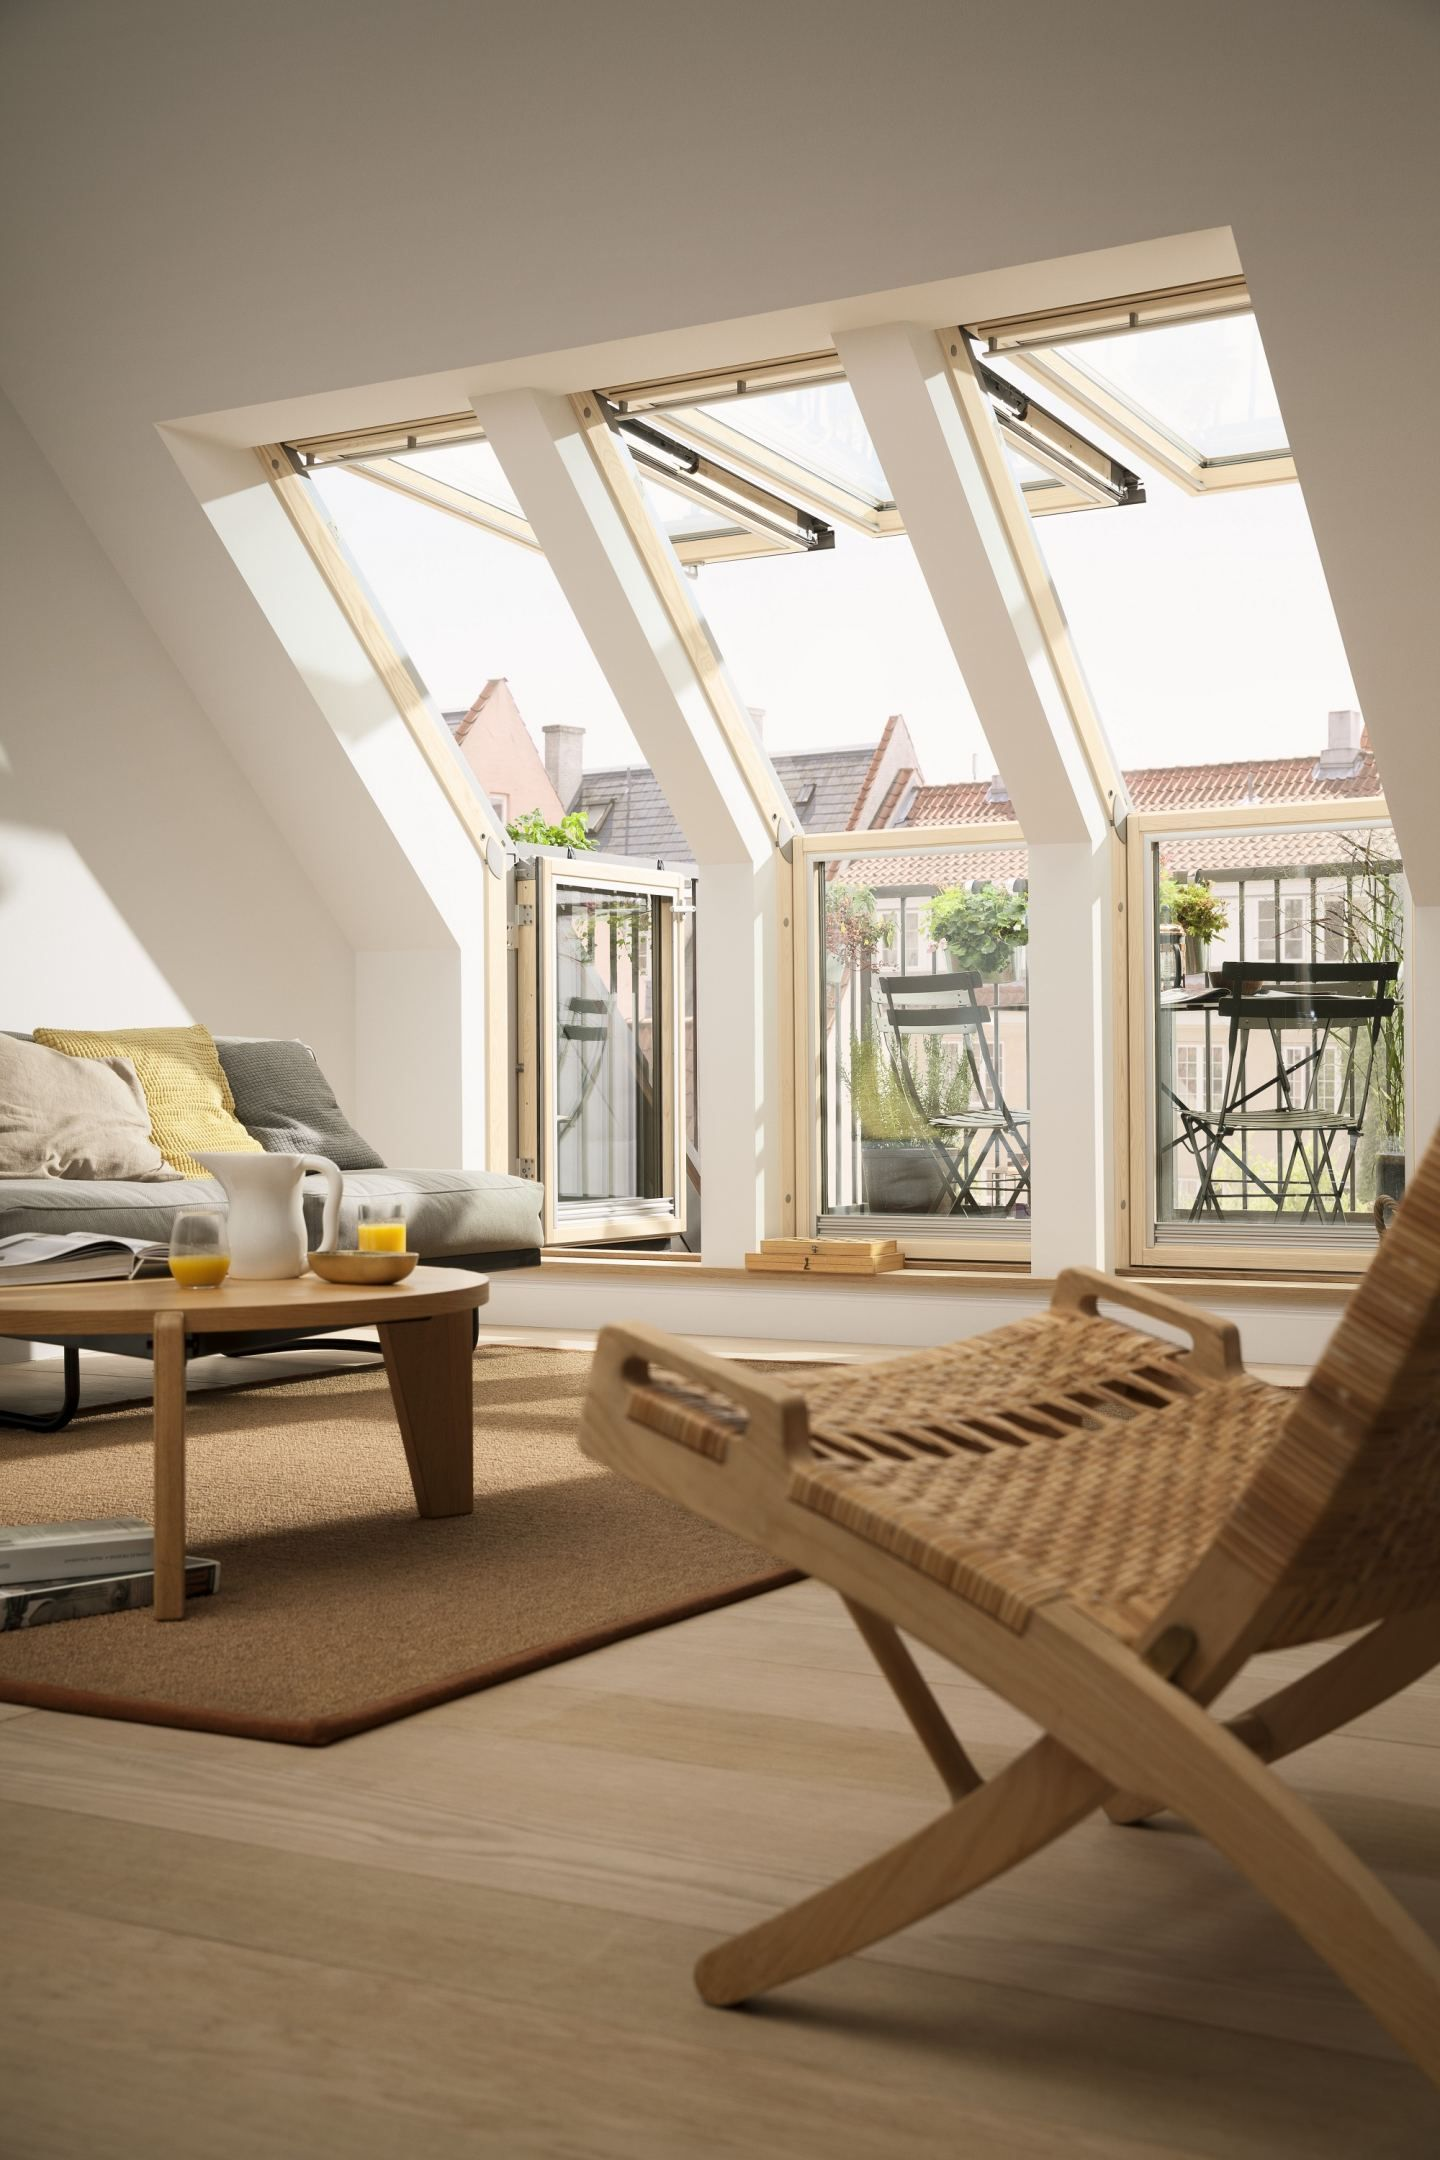 Mesmerizing Window Design For Small House To Be Inspired By: Loft Room, Loft Spaces, Loft Conversion Bedroom